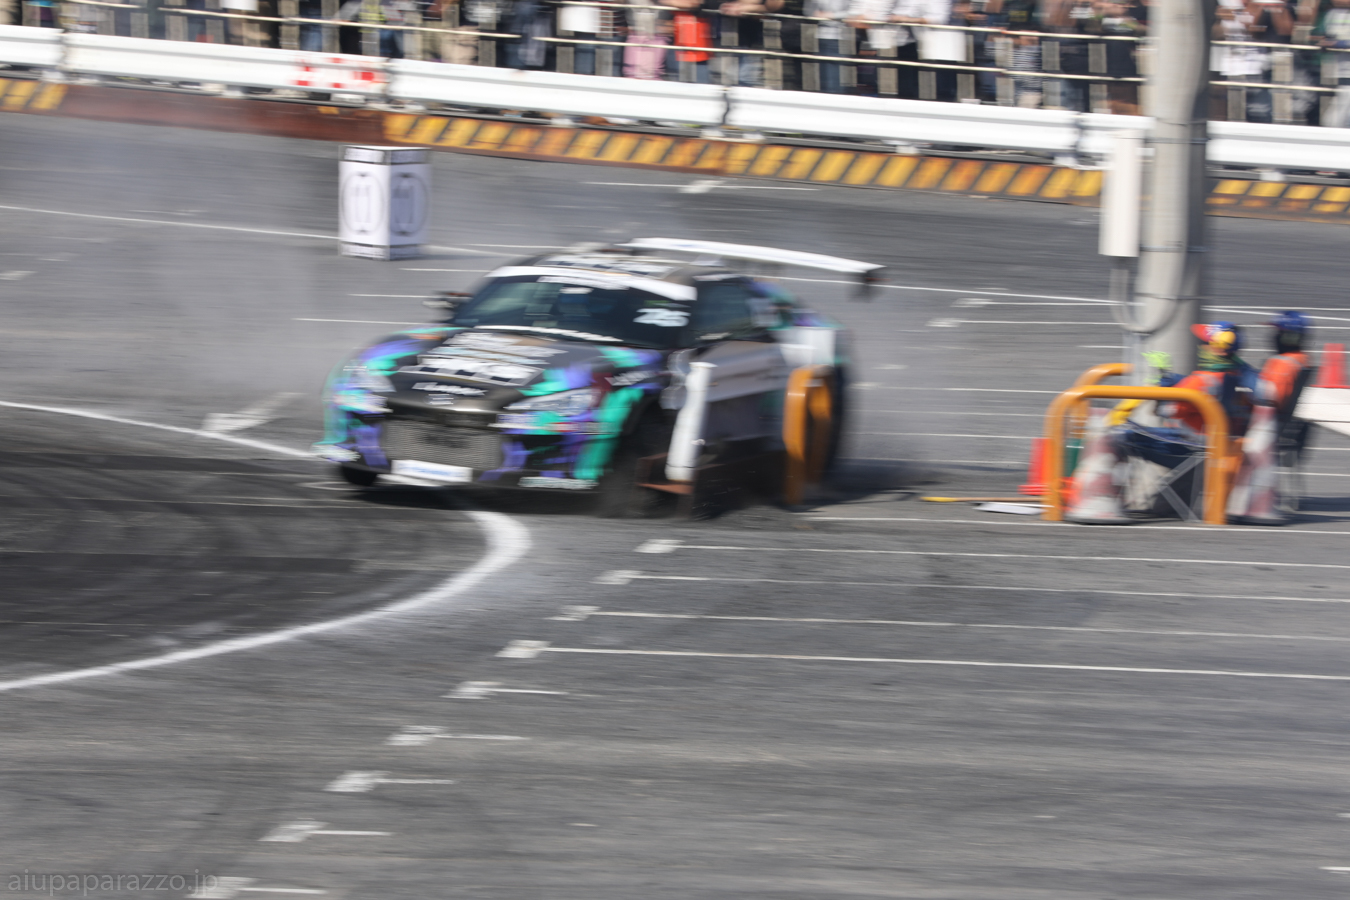 d1gp_tan2016lap3-11.jpg